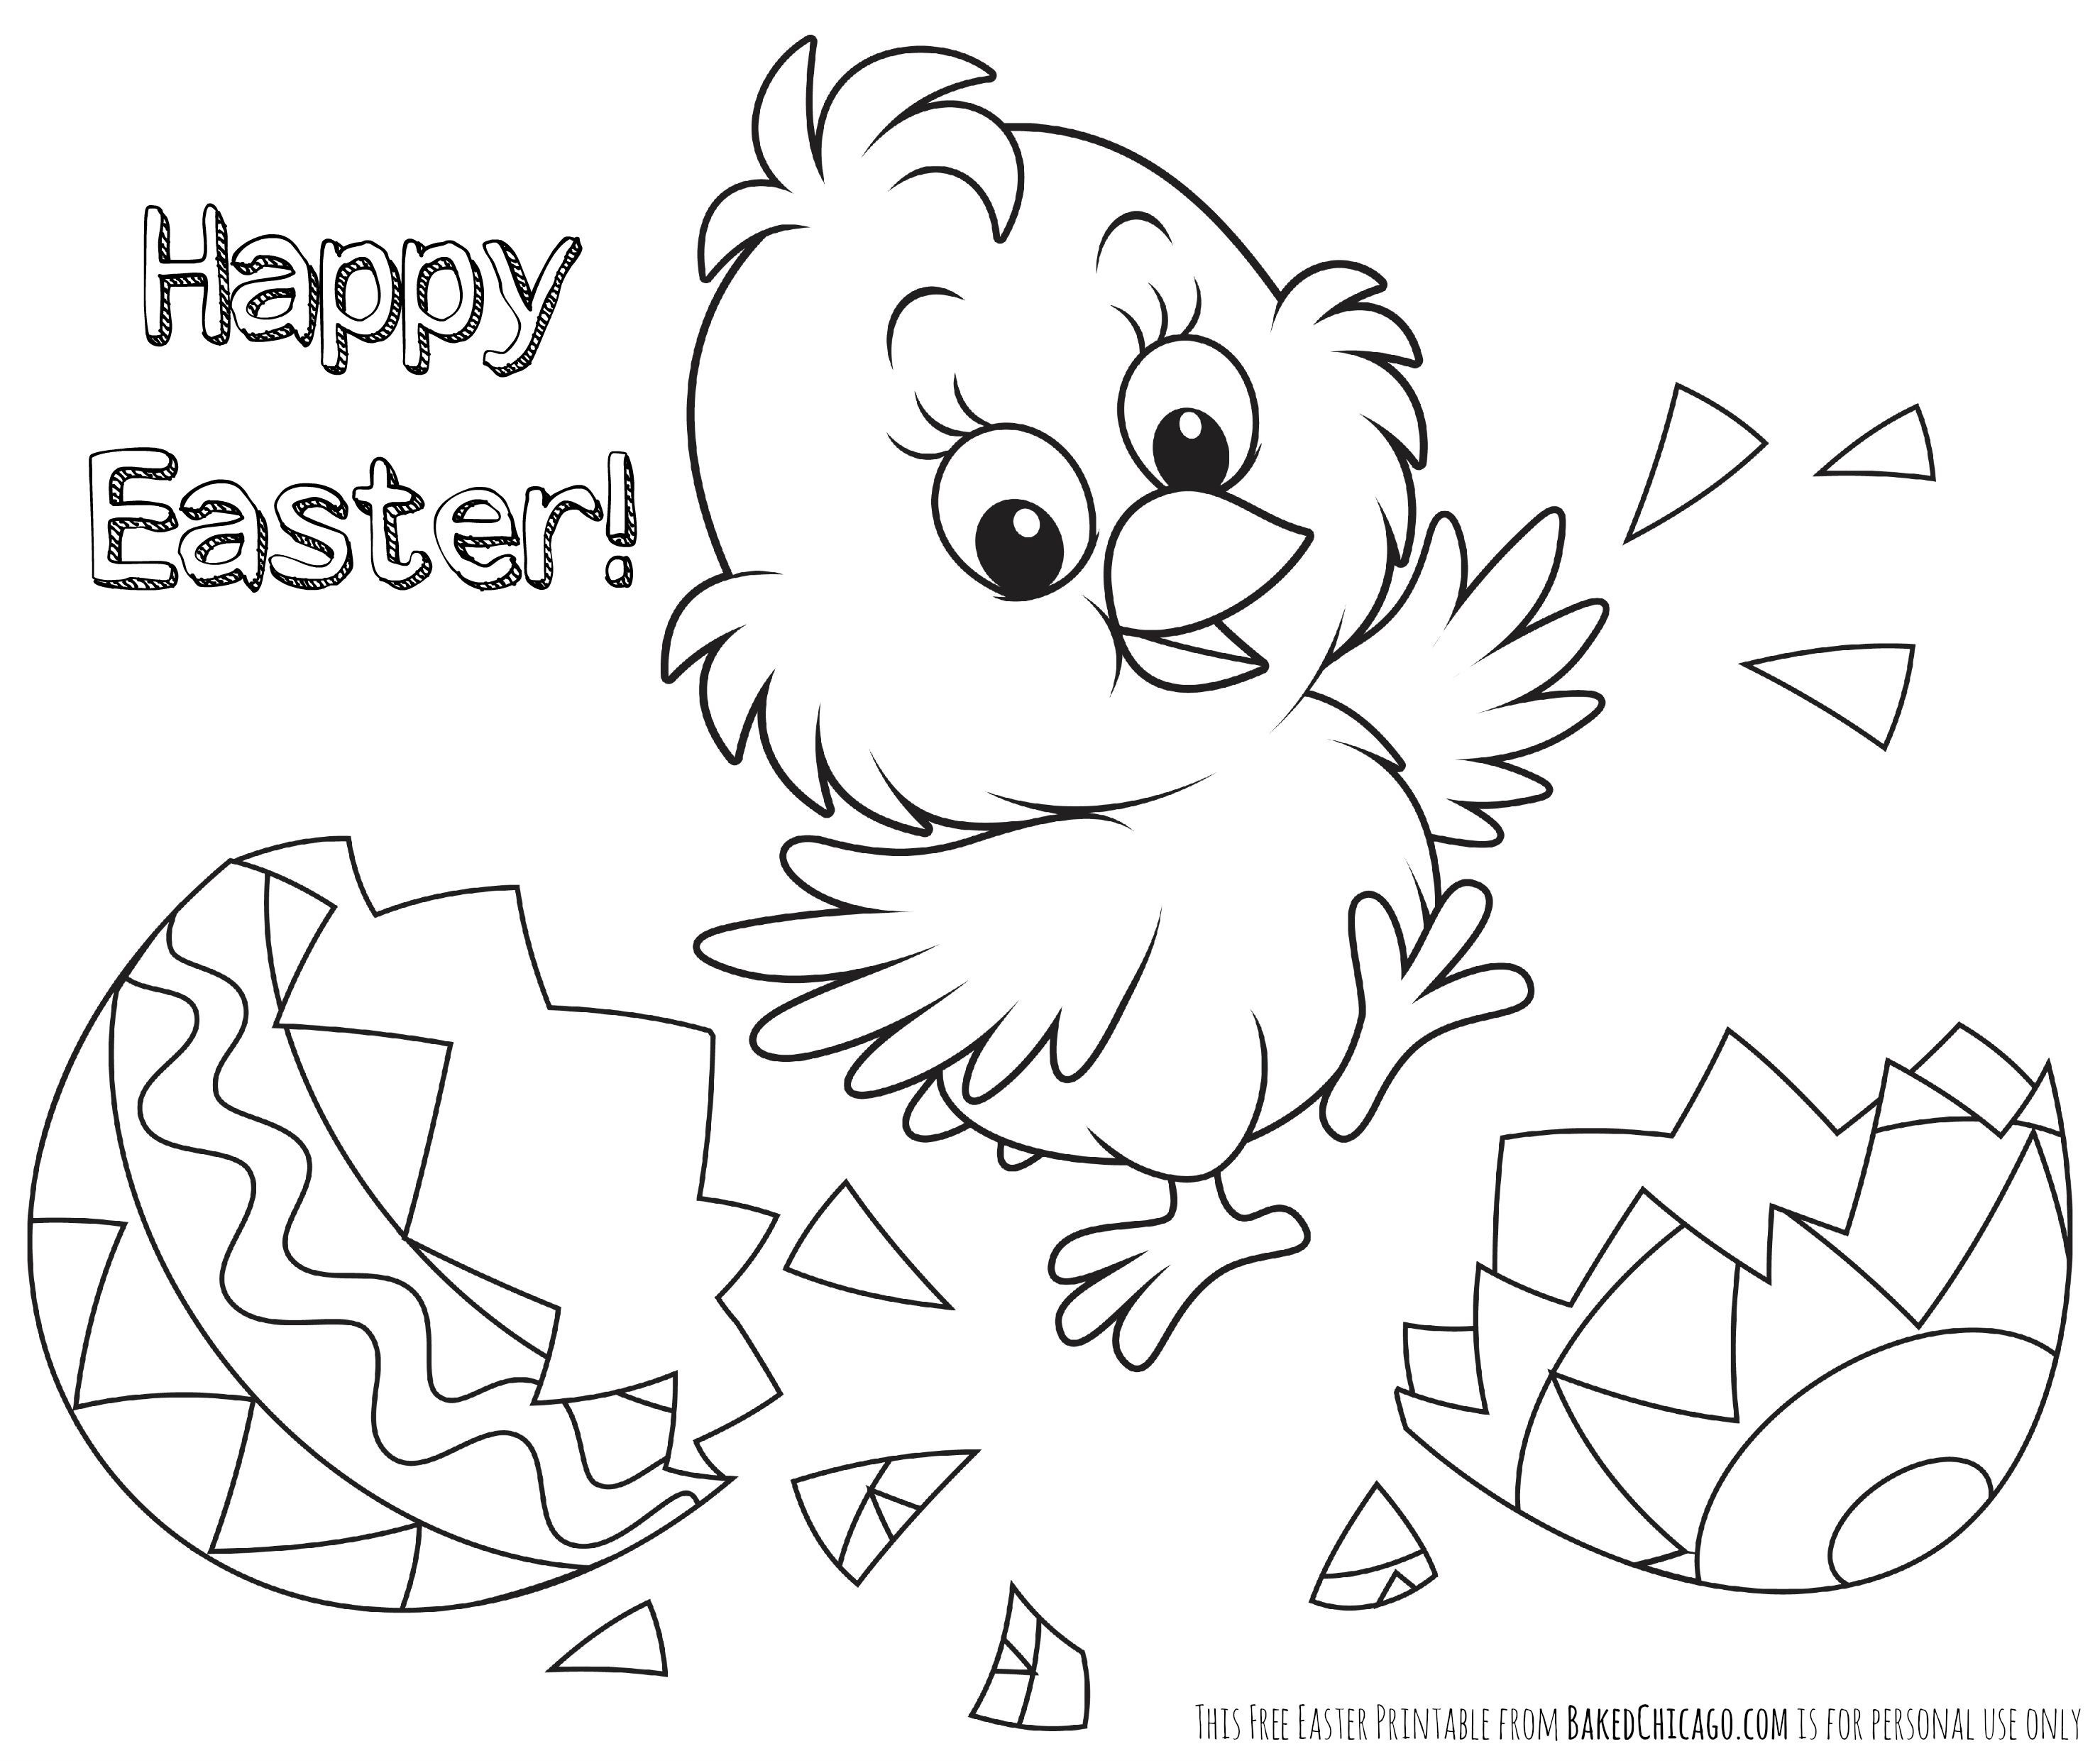 12 Free Printable Easter Coloring Pages | Topsailmultimedia - Free Printable Easter Coloring Pages